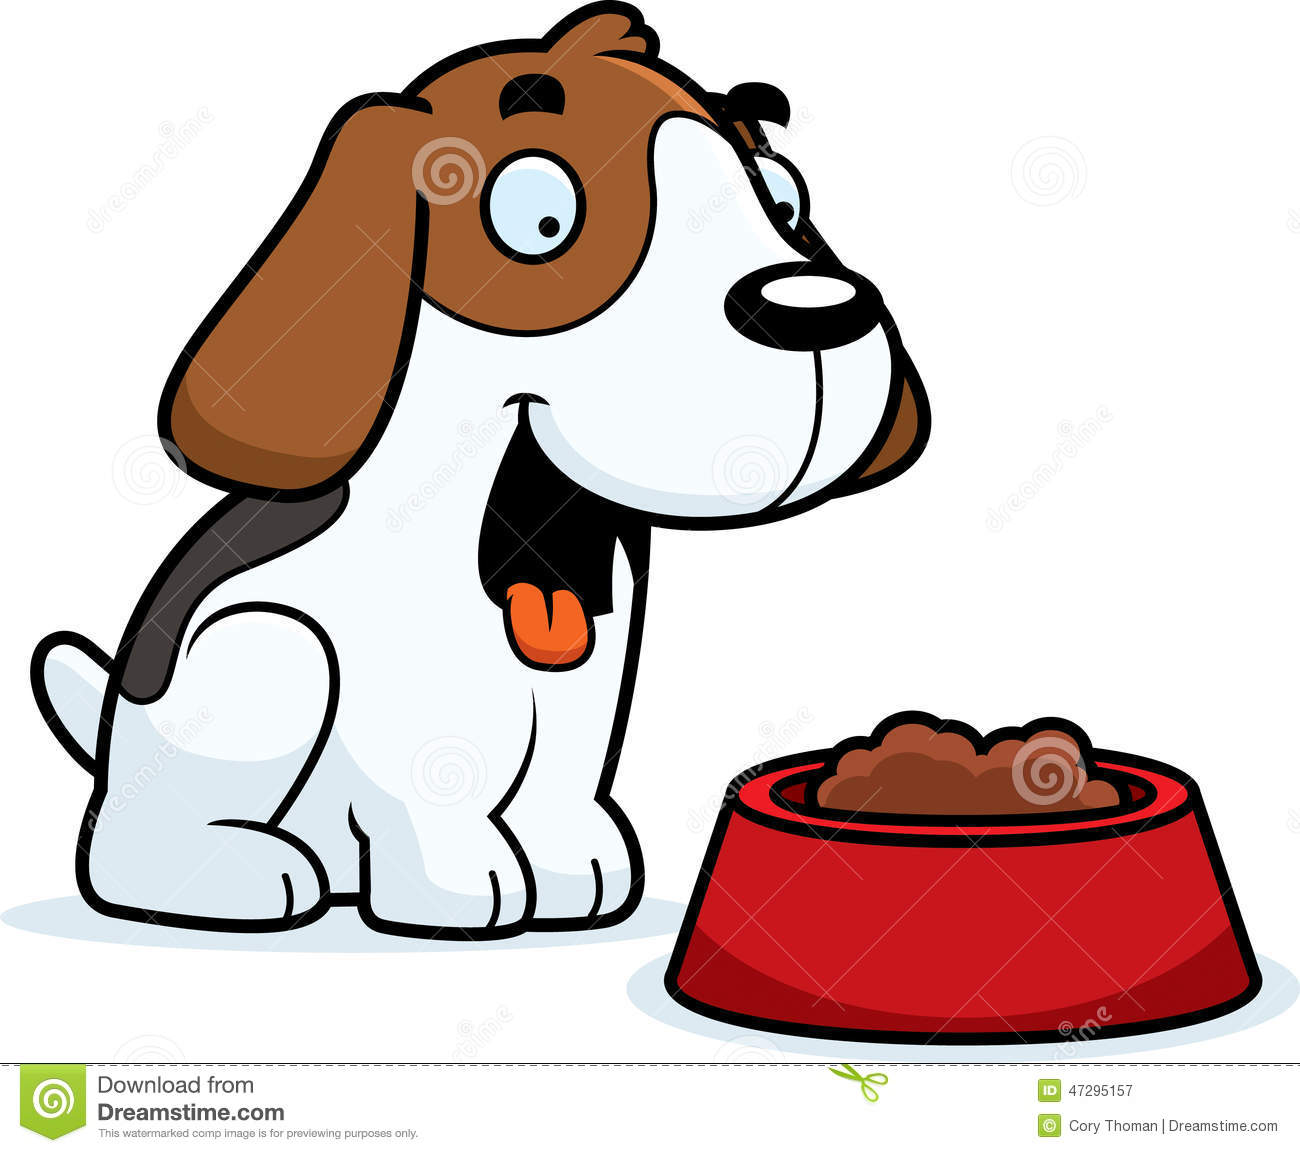 Beagle Puppy Eating Stock Illustrations 11 Beagle Puppy Eating Stock Illustrations Vectors Clipart Dreamstime